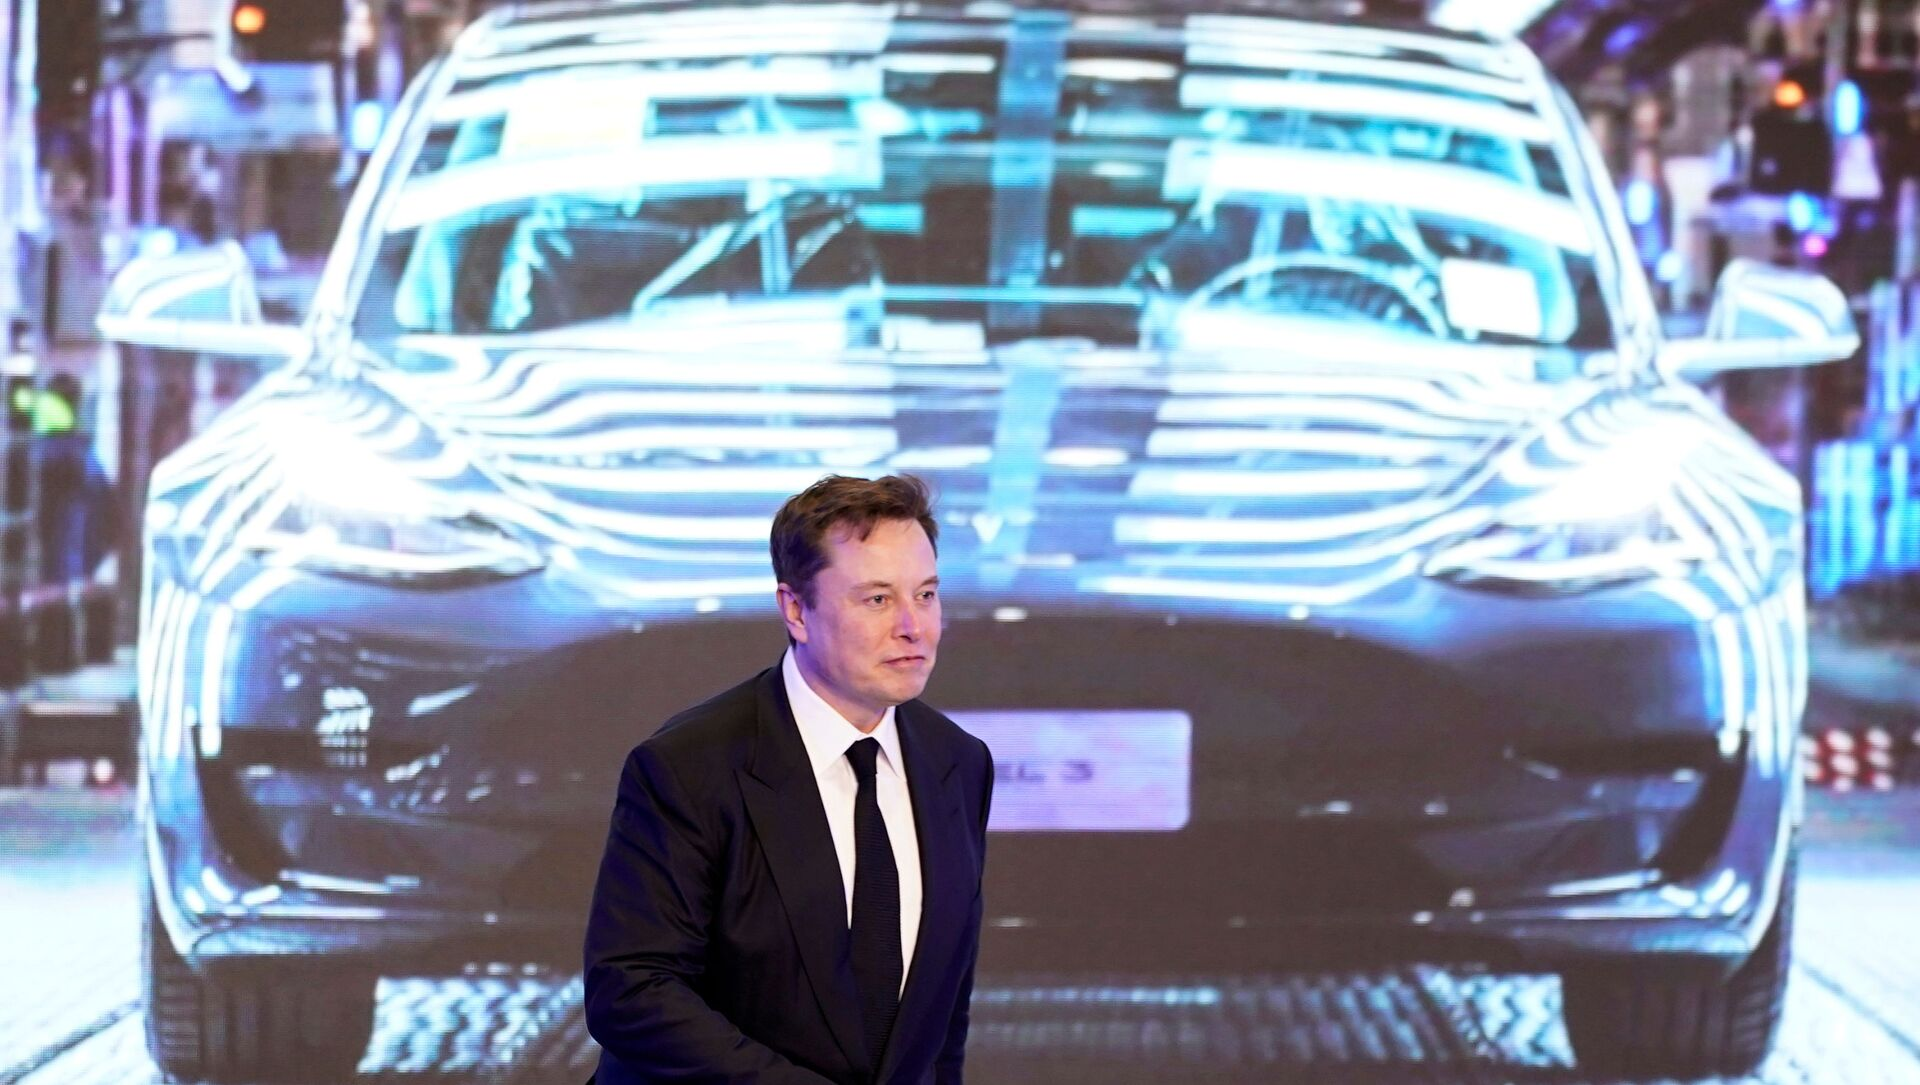 Tesla Inc CEO Elon Musk walks next to a screen showing an image of Tesla Model 3 car during an opening ceremony for Tesla China-made Model Y program in Shanghai, China January 7, 2020. - Sputnik International, 1920, 27.07.2021